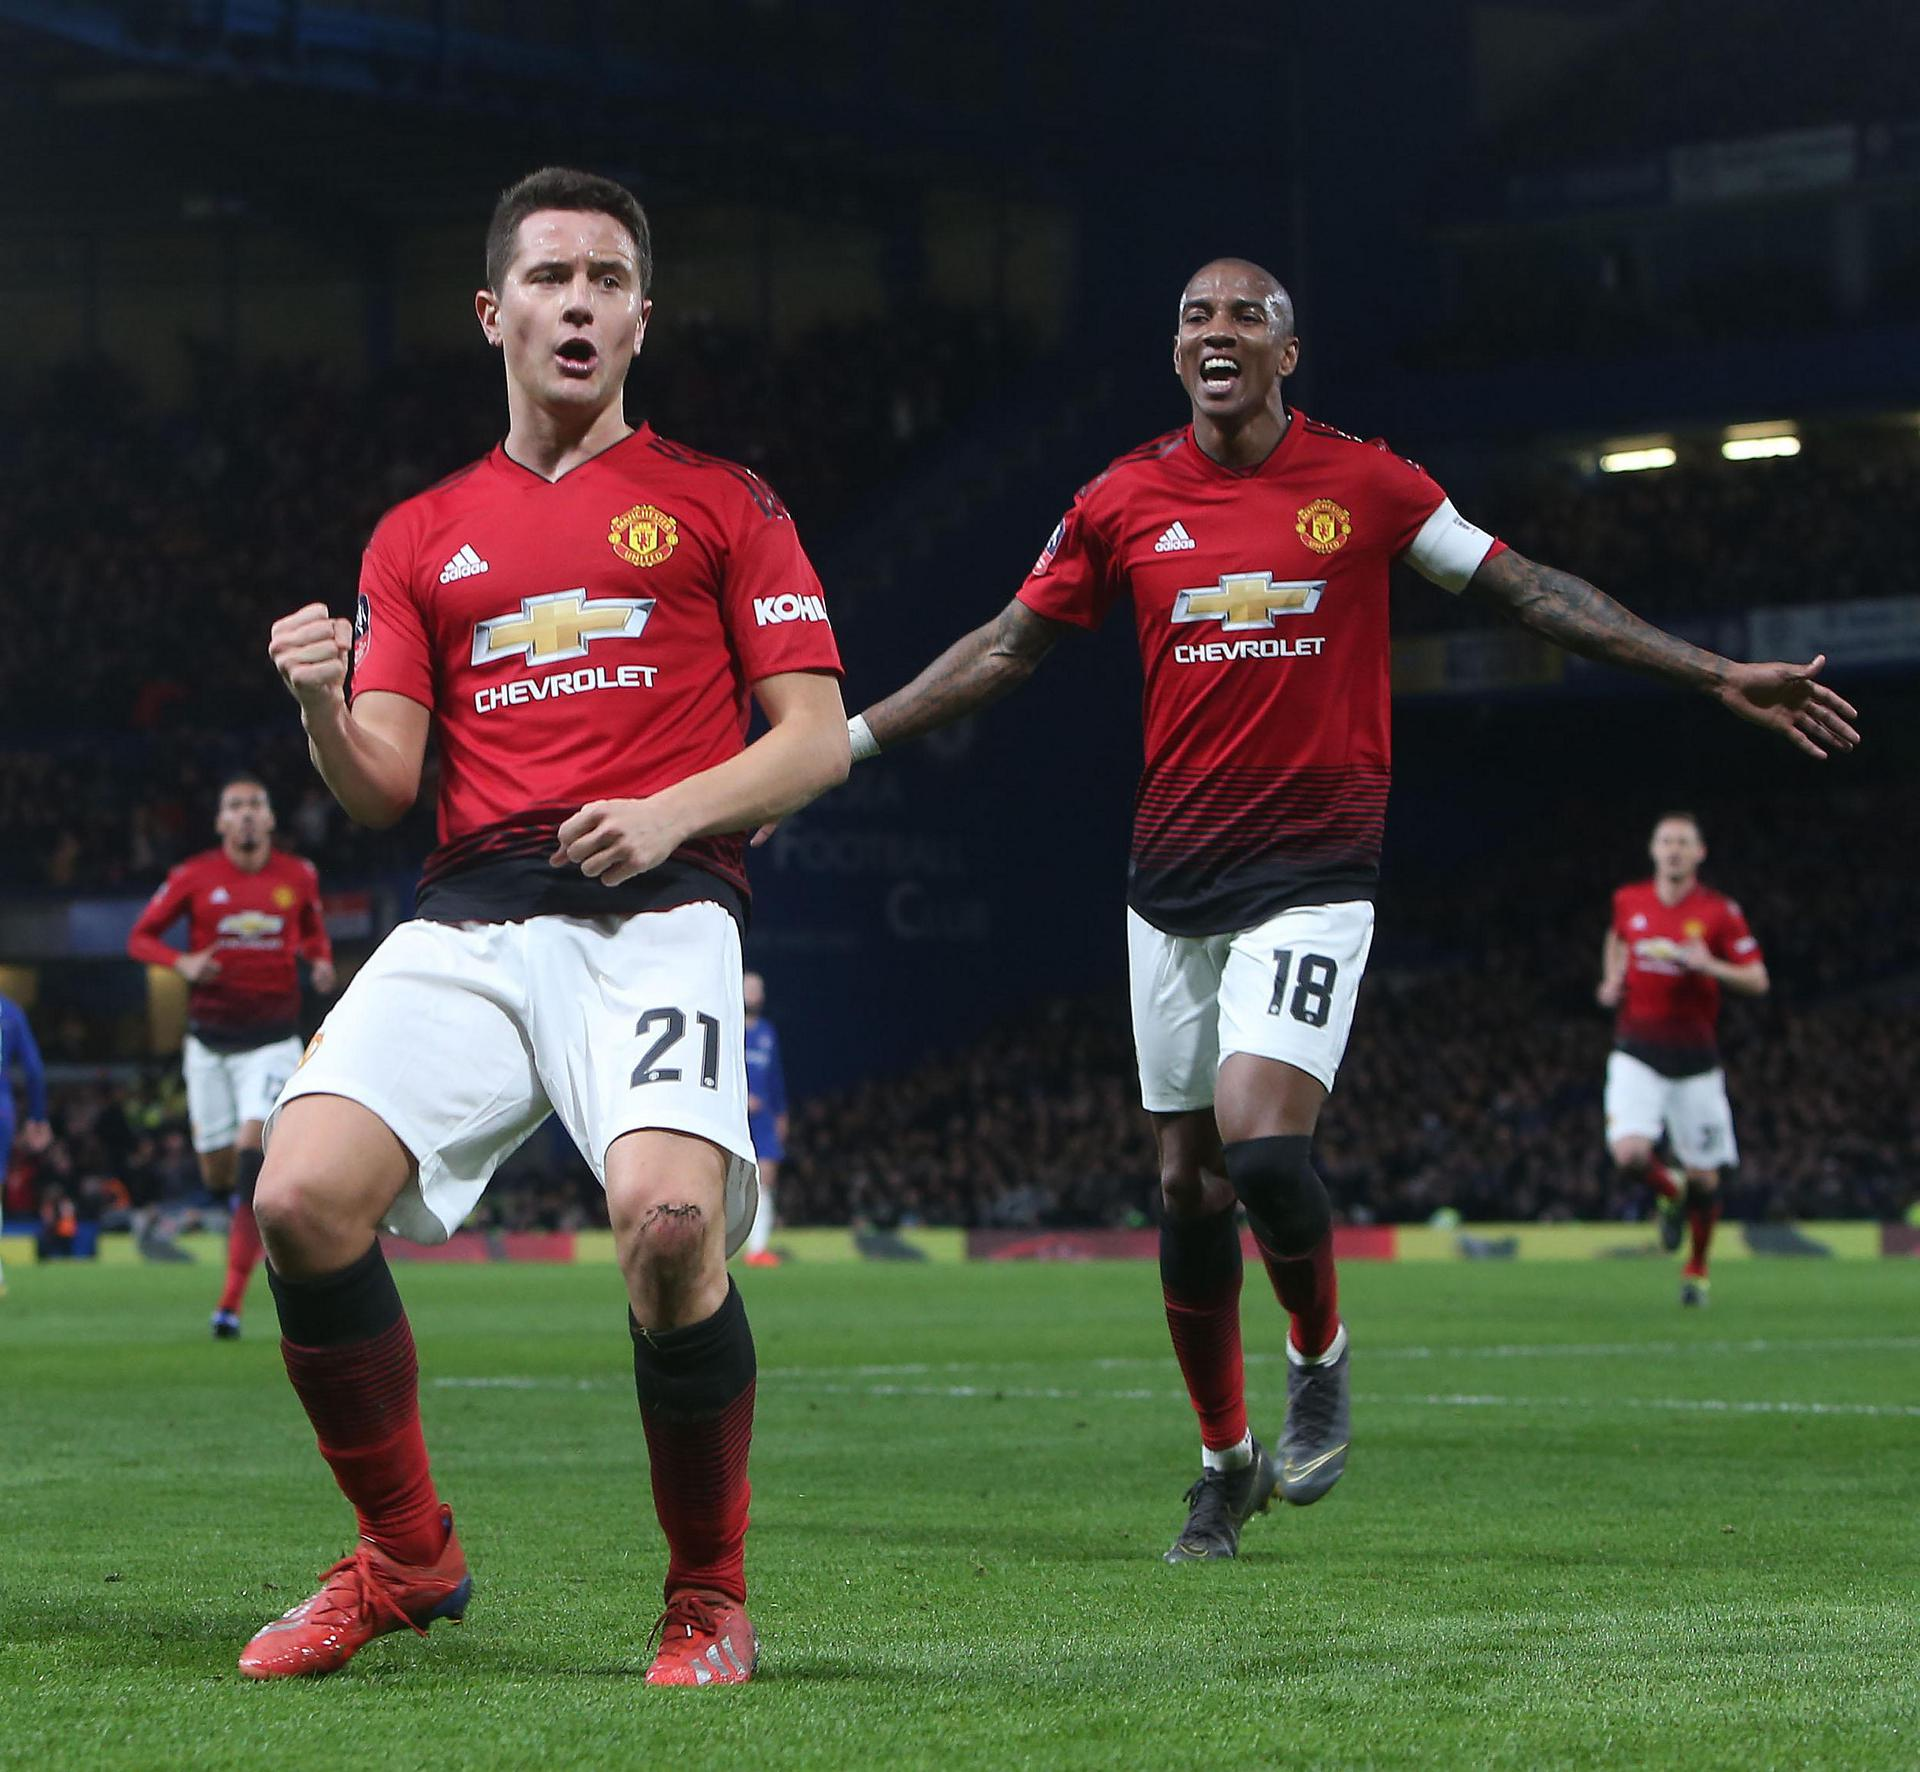 Ander Herrera celebrates one of his goals for United